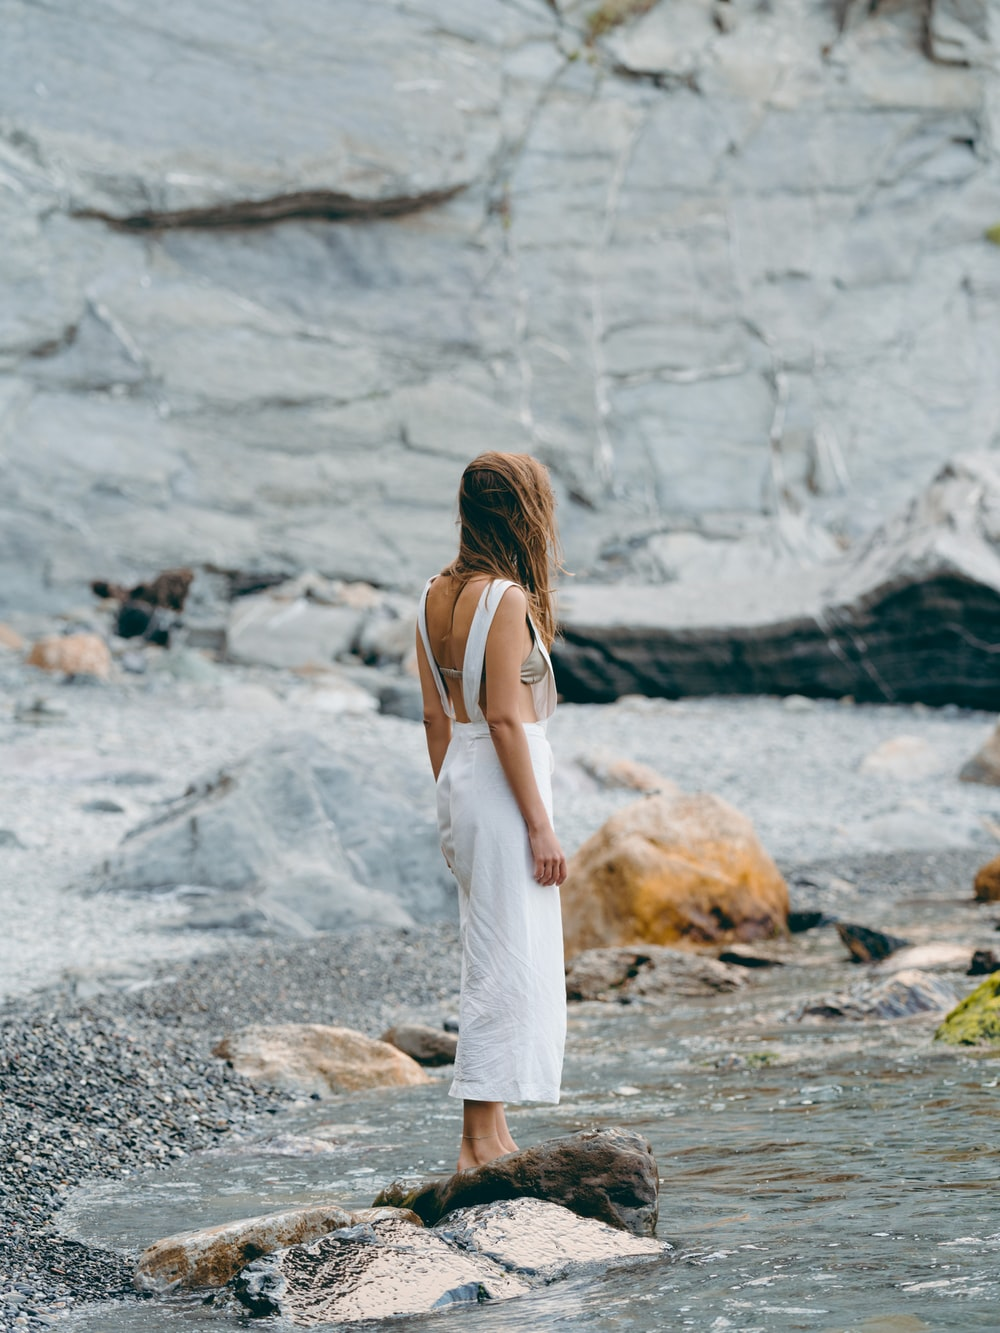 woman wearing white dress standing on the stone near the body of water